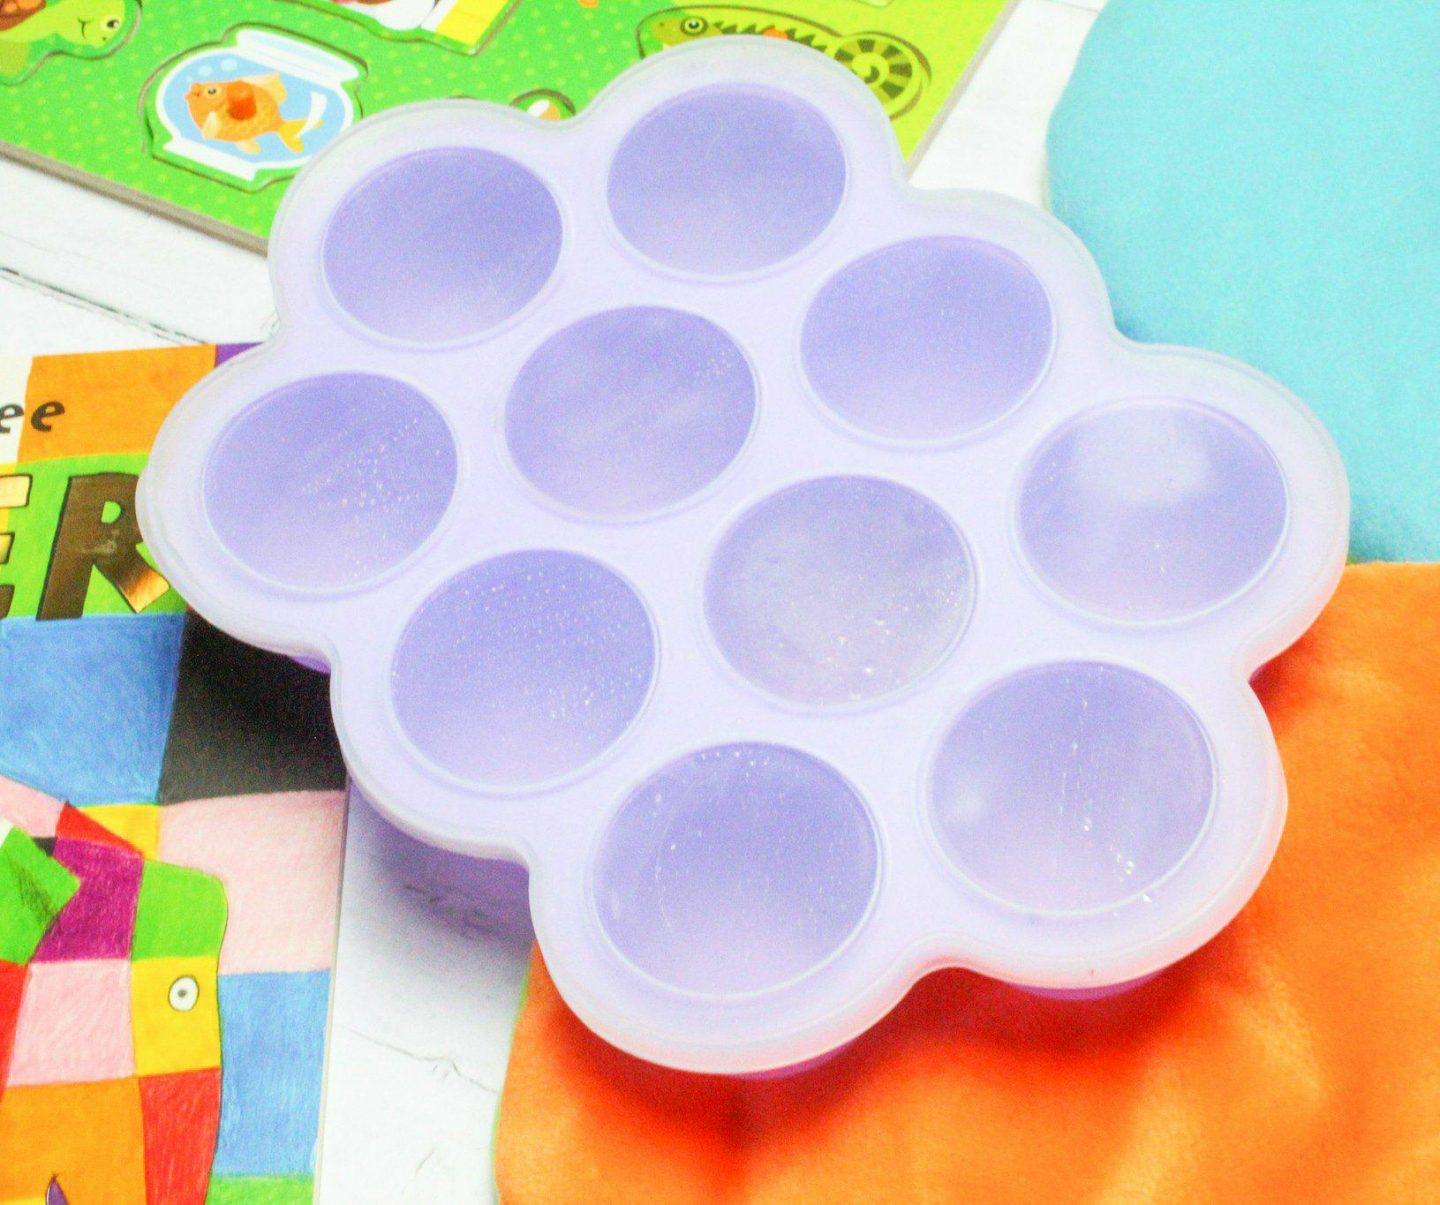 Preparing for Baby | Mash 'n' Stash Weaning Pots from Baby Wings